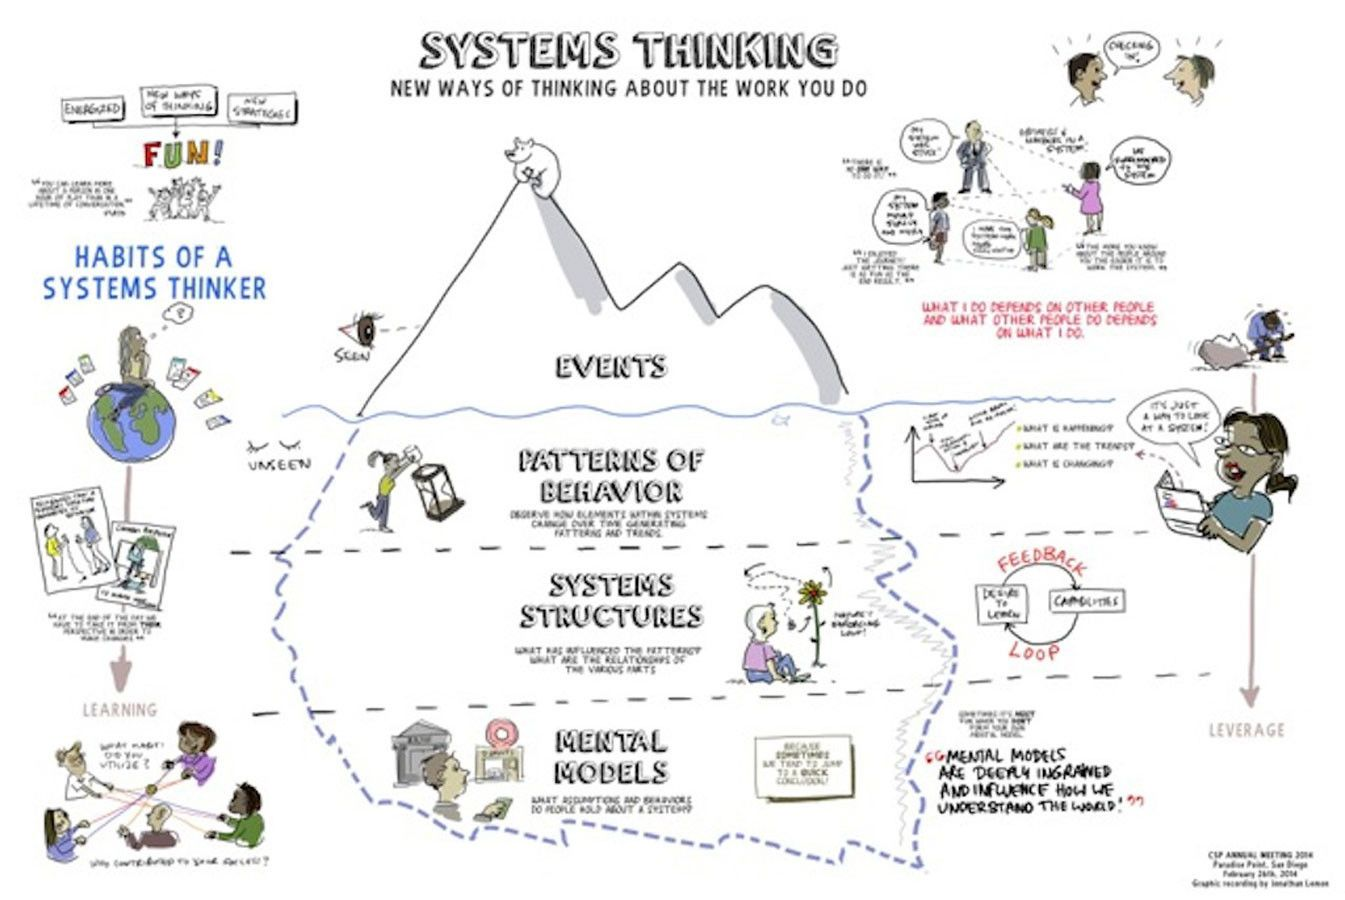 PS E4Iceberg Systems thinking, Complex systems, Change